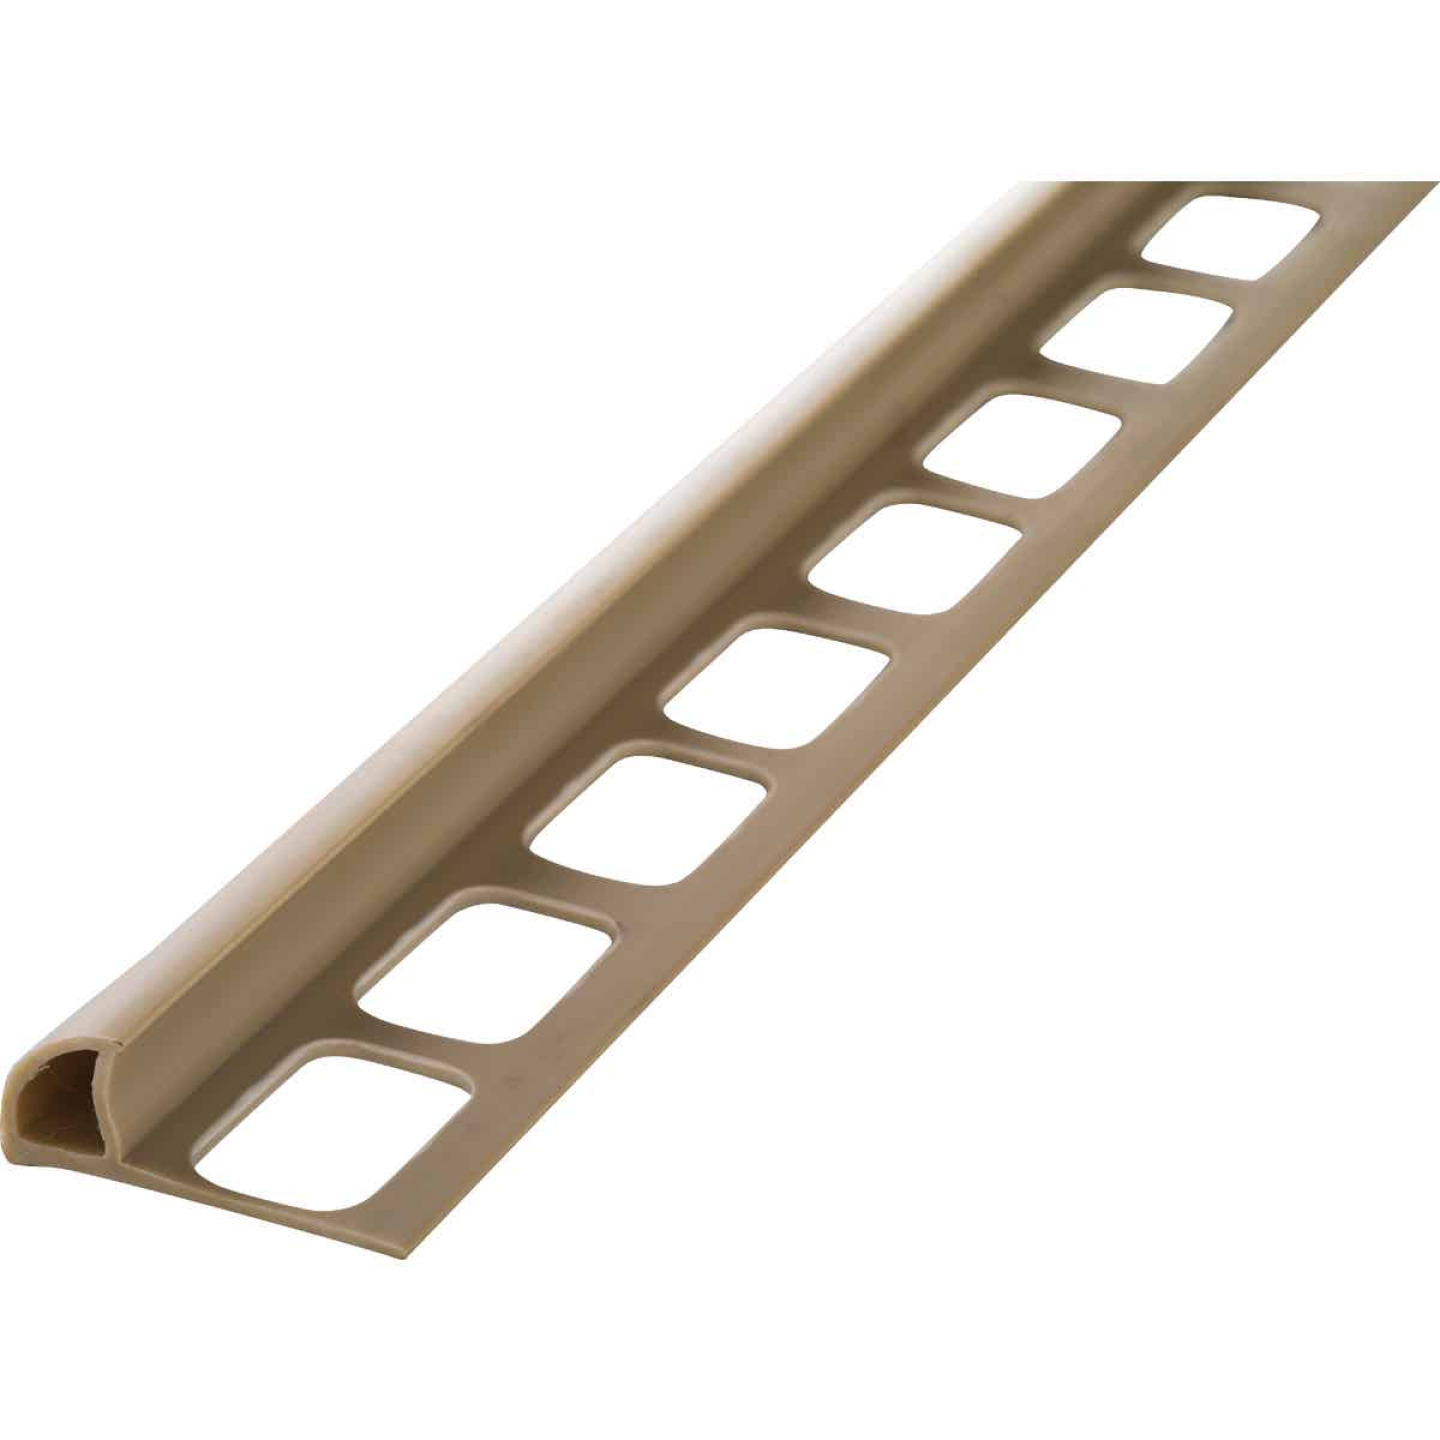 M D Building Products 3/8 In. x 8 Ft. Beige PVC Bullnose Tile Edging Image 1